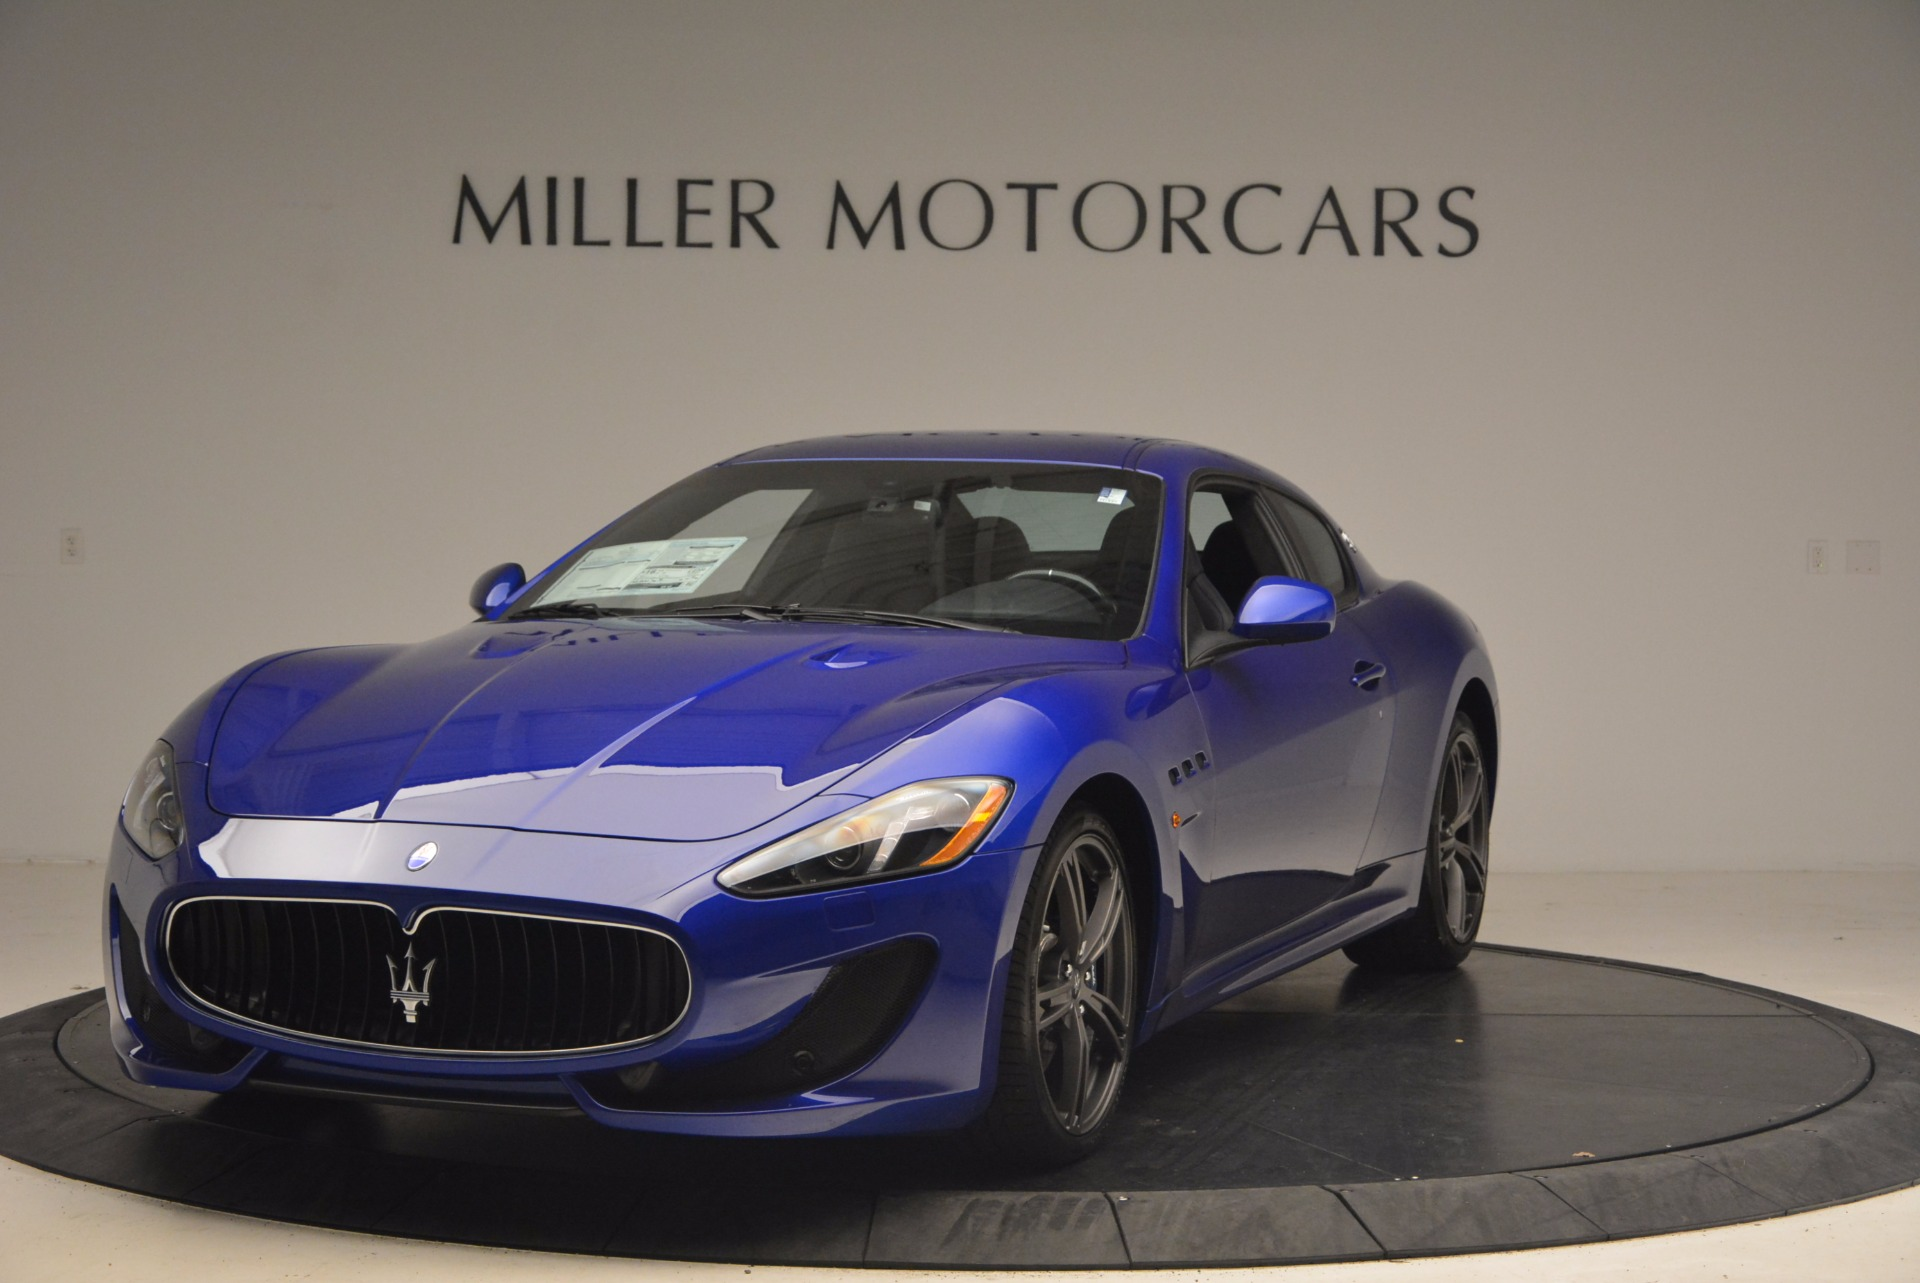 New 2017 Maserati GranTurismo Sport Coupe Special Edition For Sale In Westport, CT 1300_main